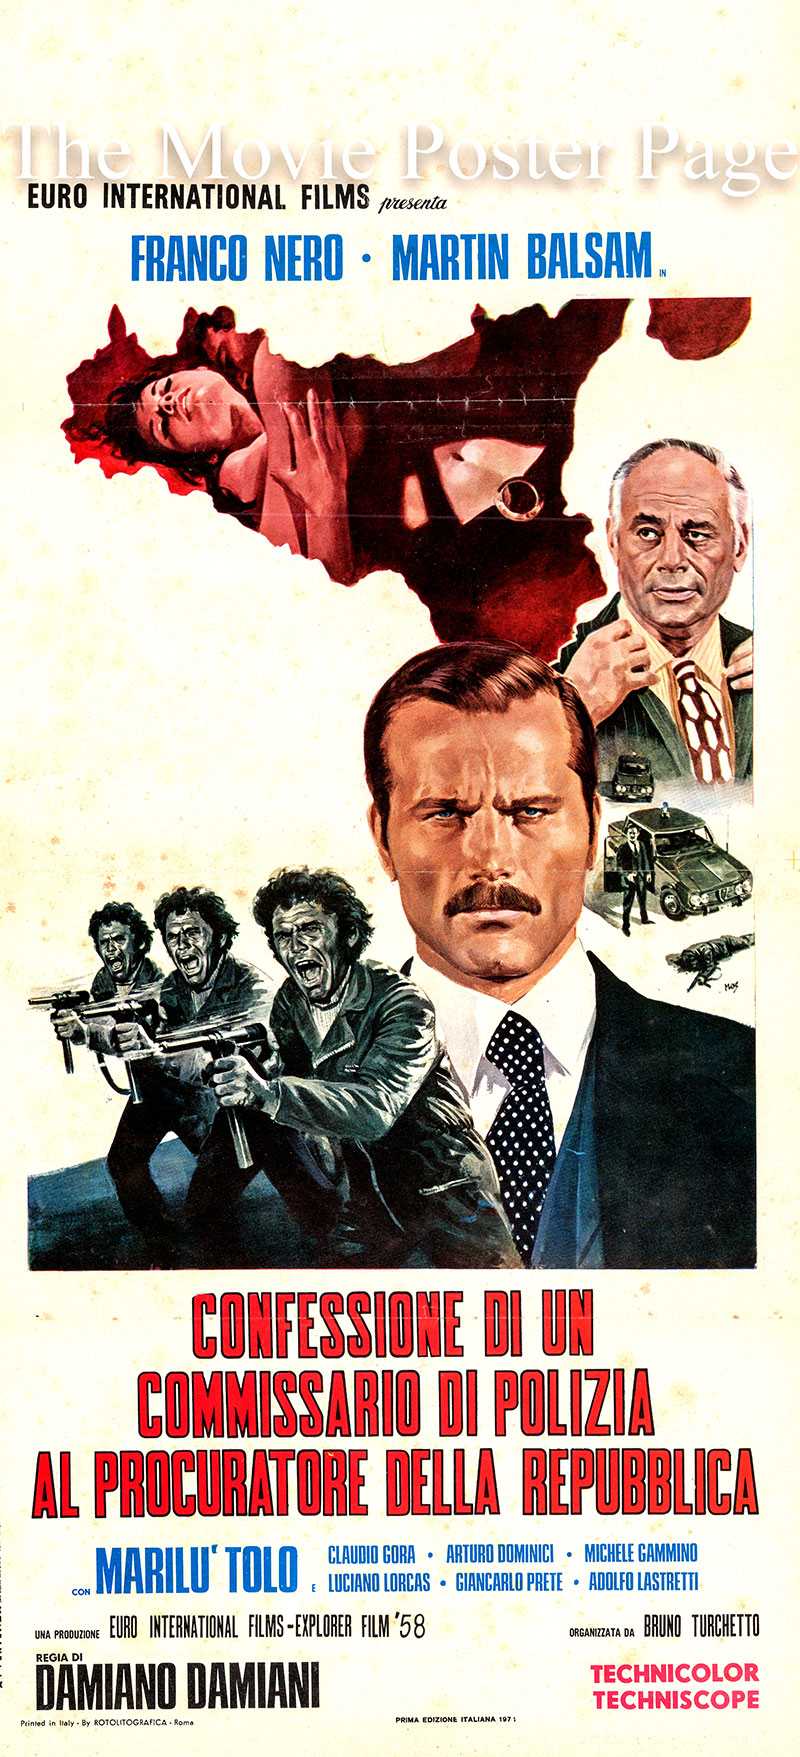 This is an Italian locandina poster for the 1971 Damiano Damiani film Confessions of a Police Captain starring Franco Nero as Deputy D. A. Traini.